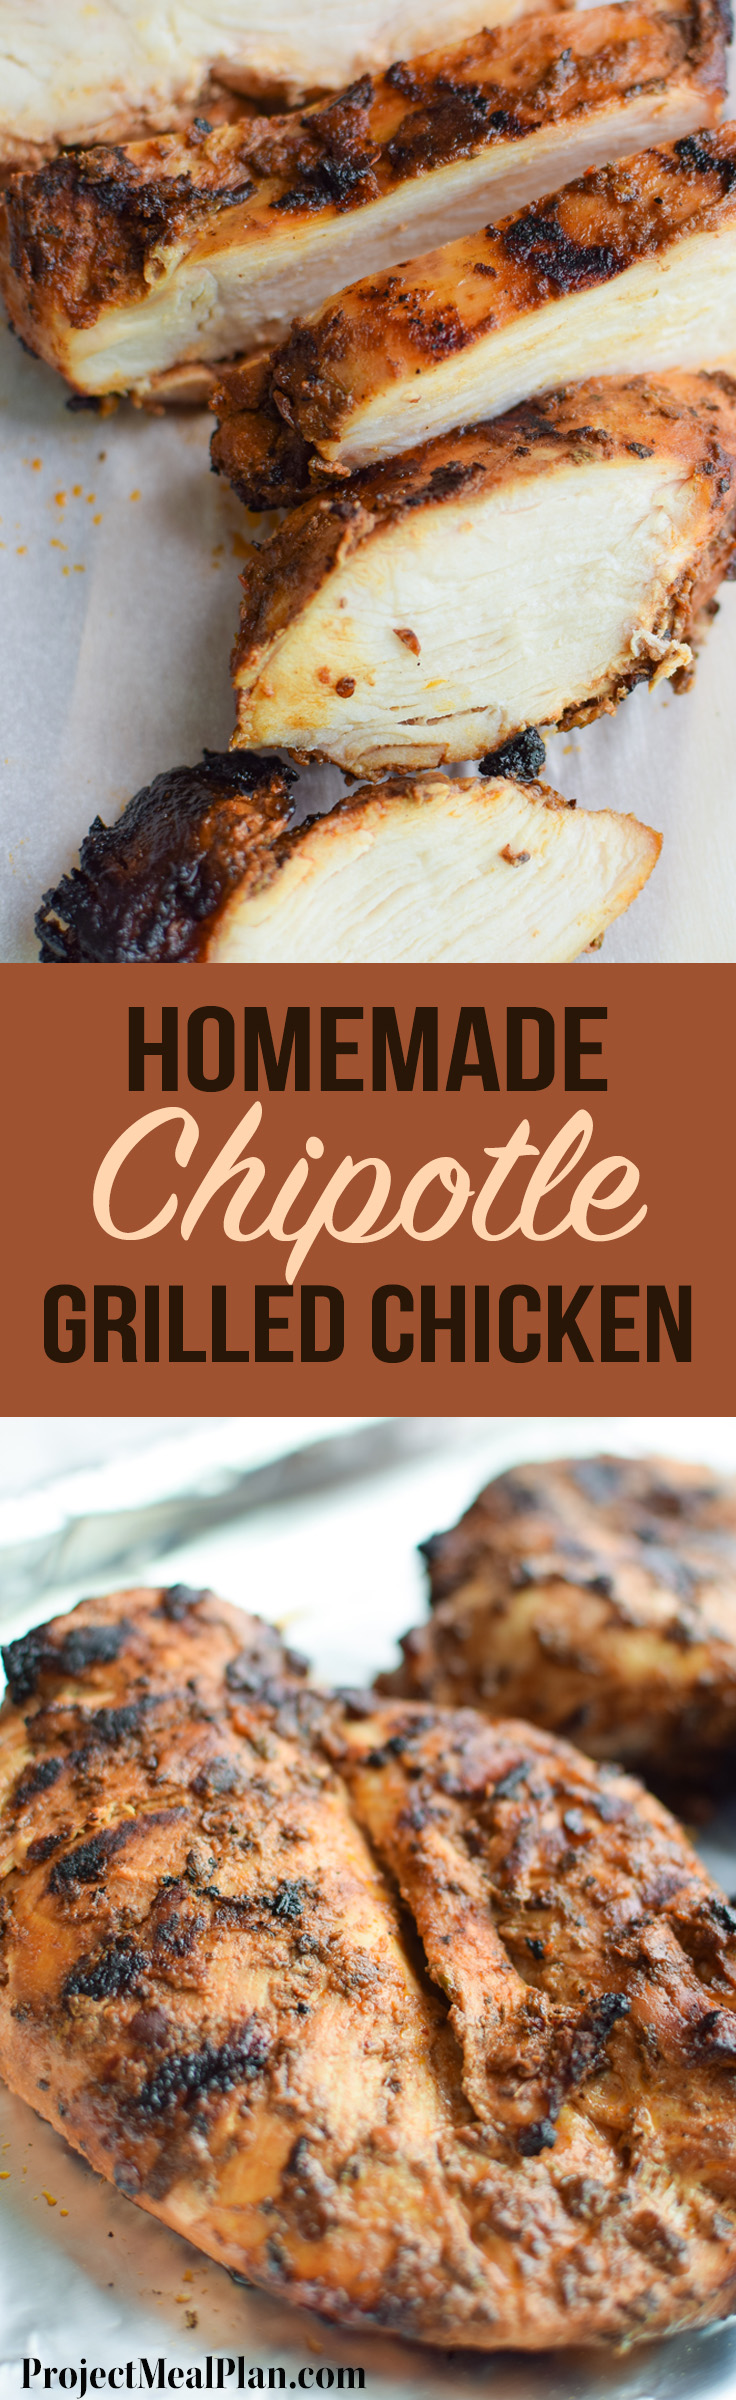 Homemade Chipotle Grilled Chicken recipe, super easy to make in large batches for that Chipotle restaurant taste at home! - ProjectMealPlan.com